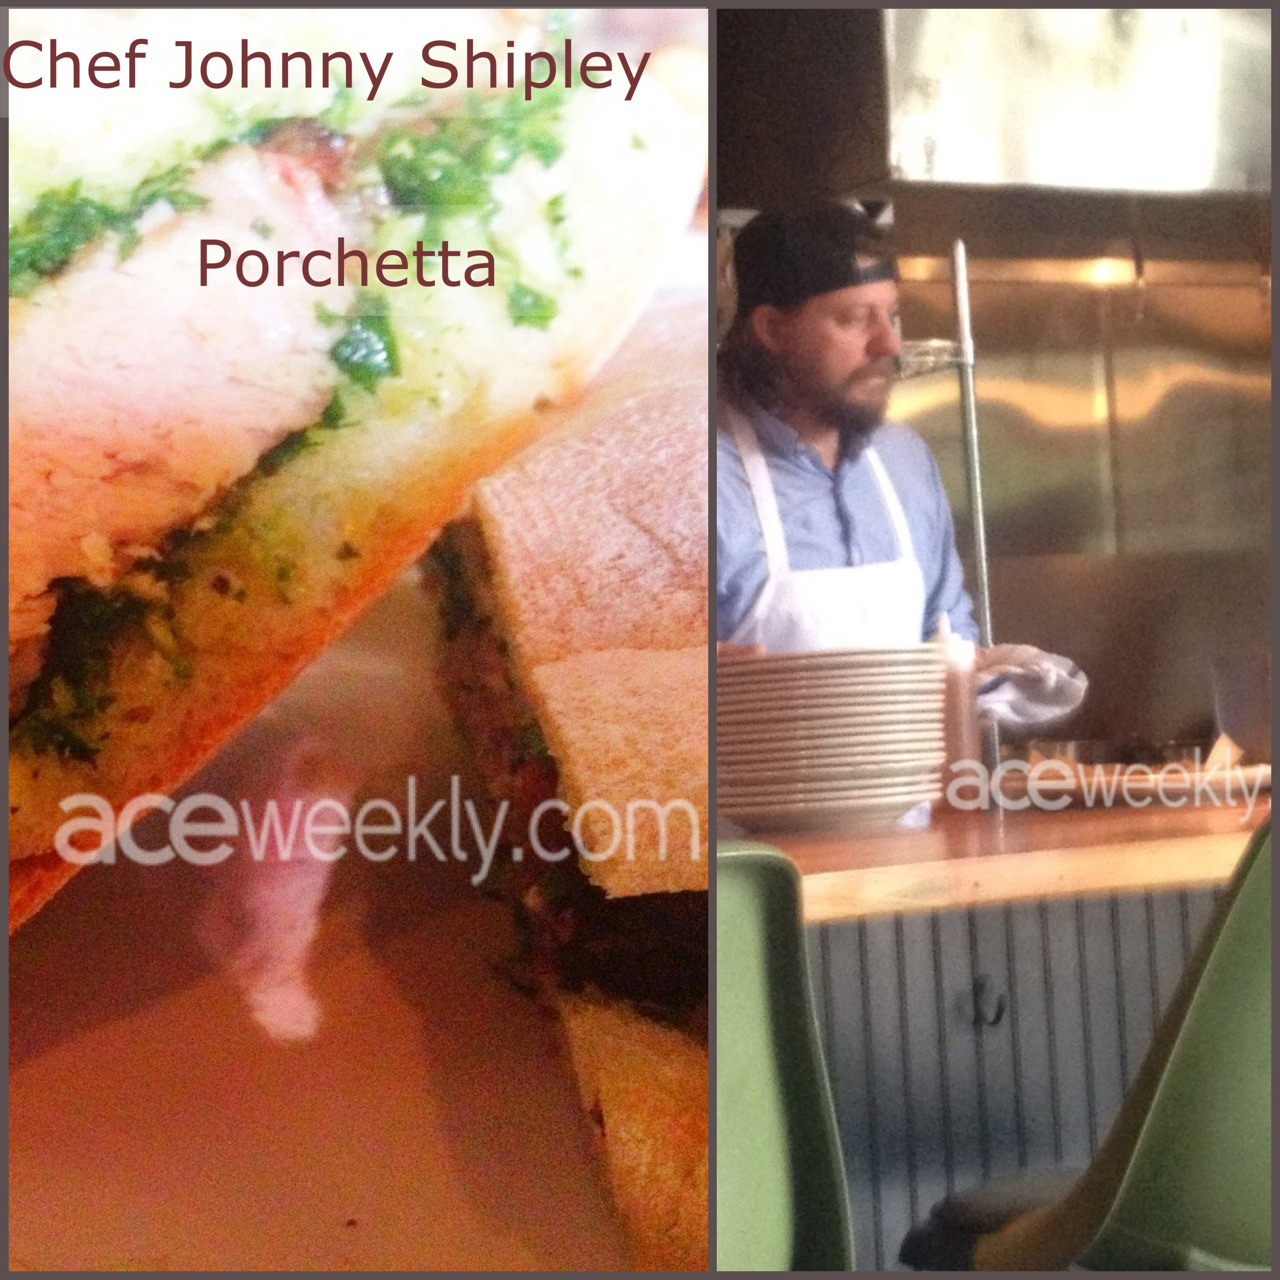 reviews at a later date when they're at full speed. Chef Johnny Shipley's Korean Pancake Pop Up was one of the best bites of food in #LexingtonKy in 2012. His Porchetta at County Club is one of the best bites of meat in this city in 2013.